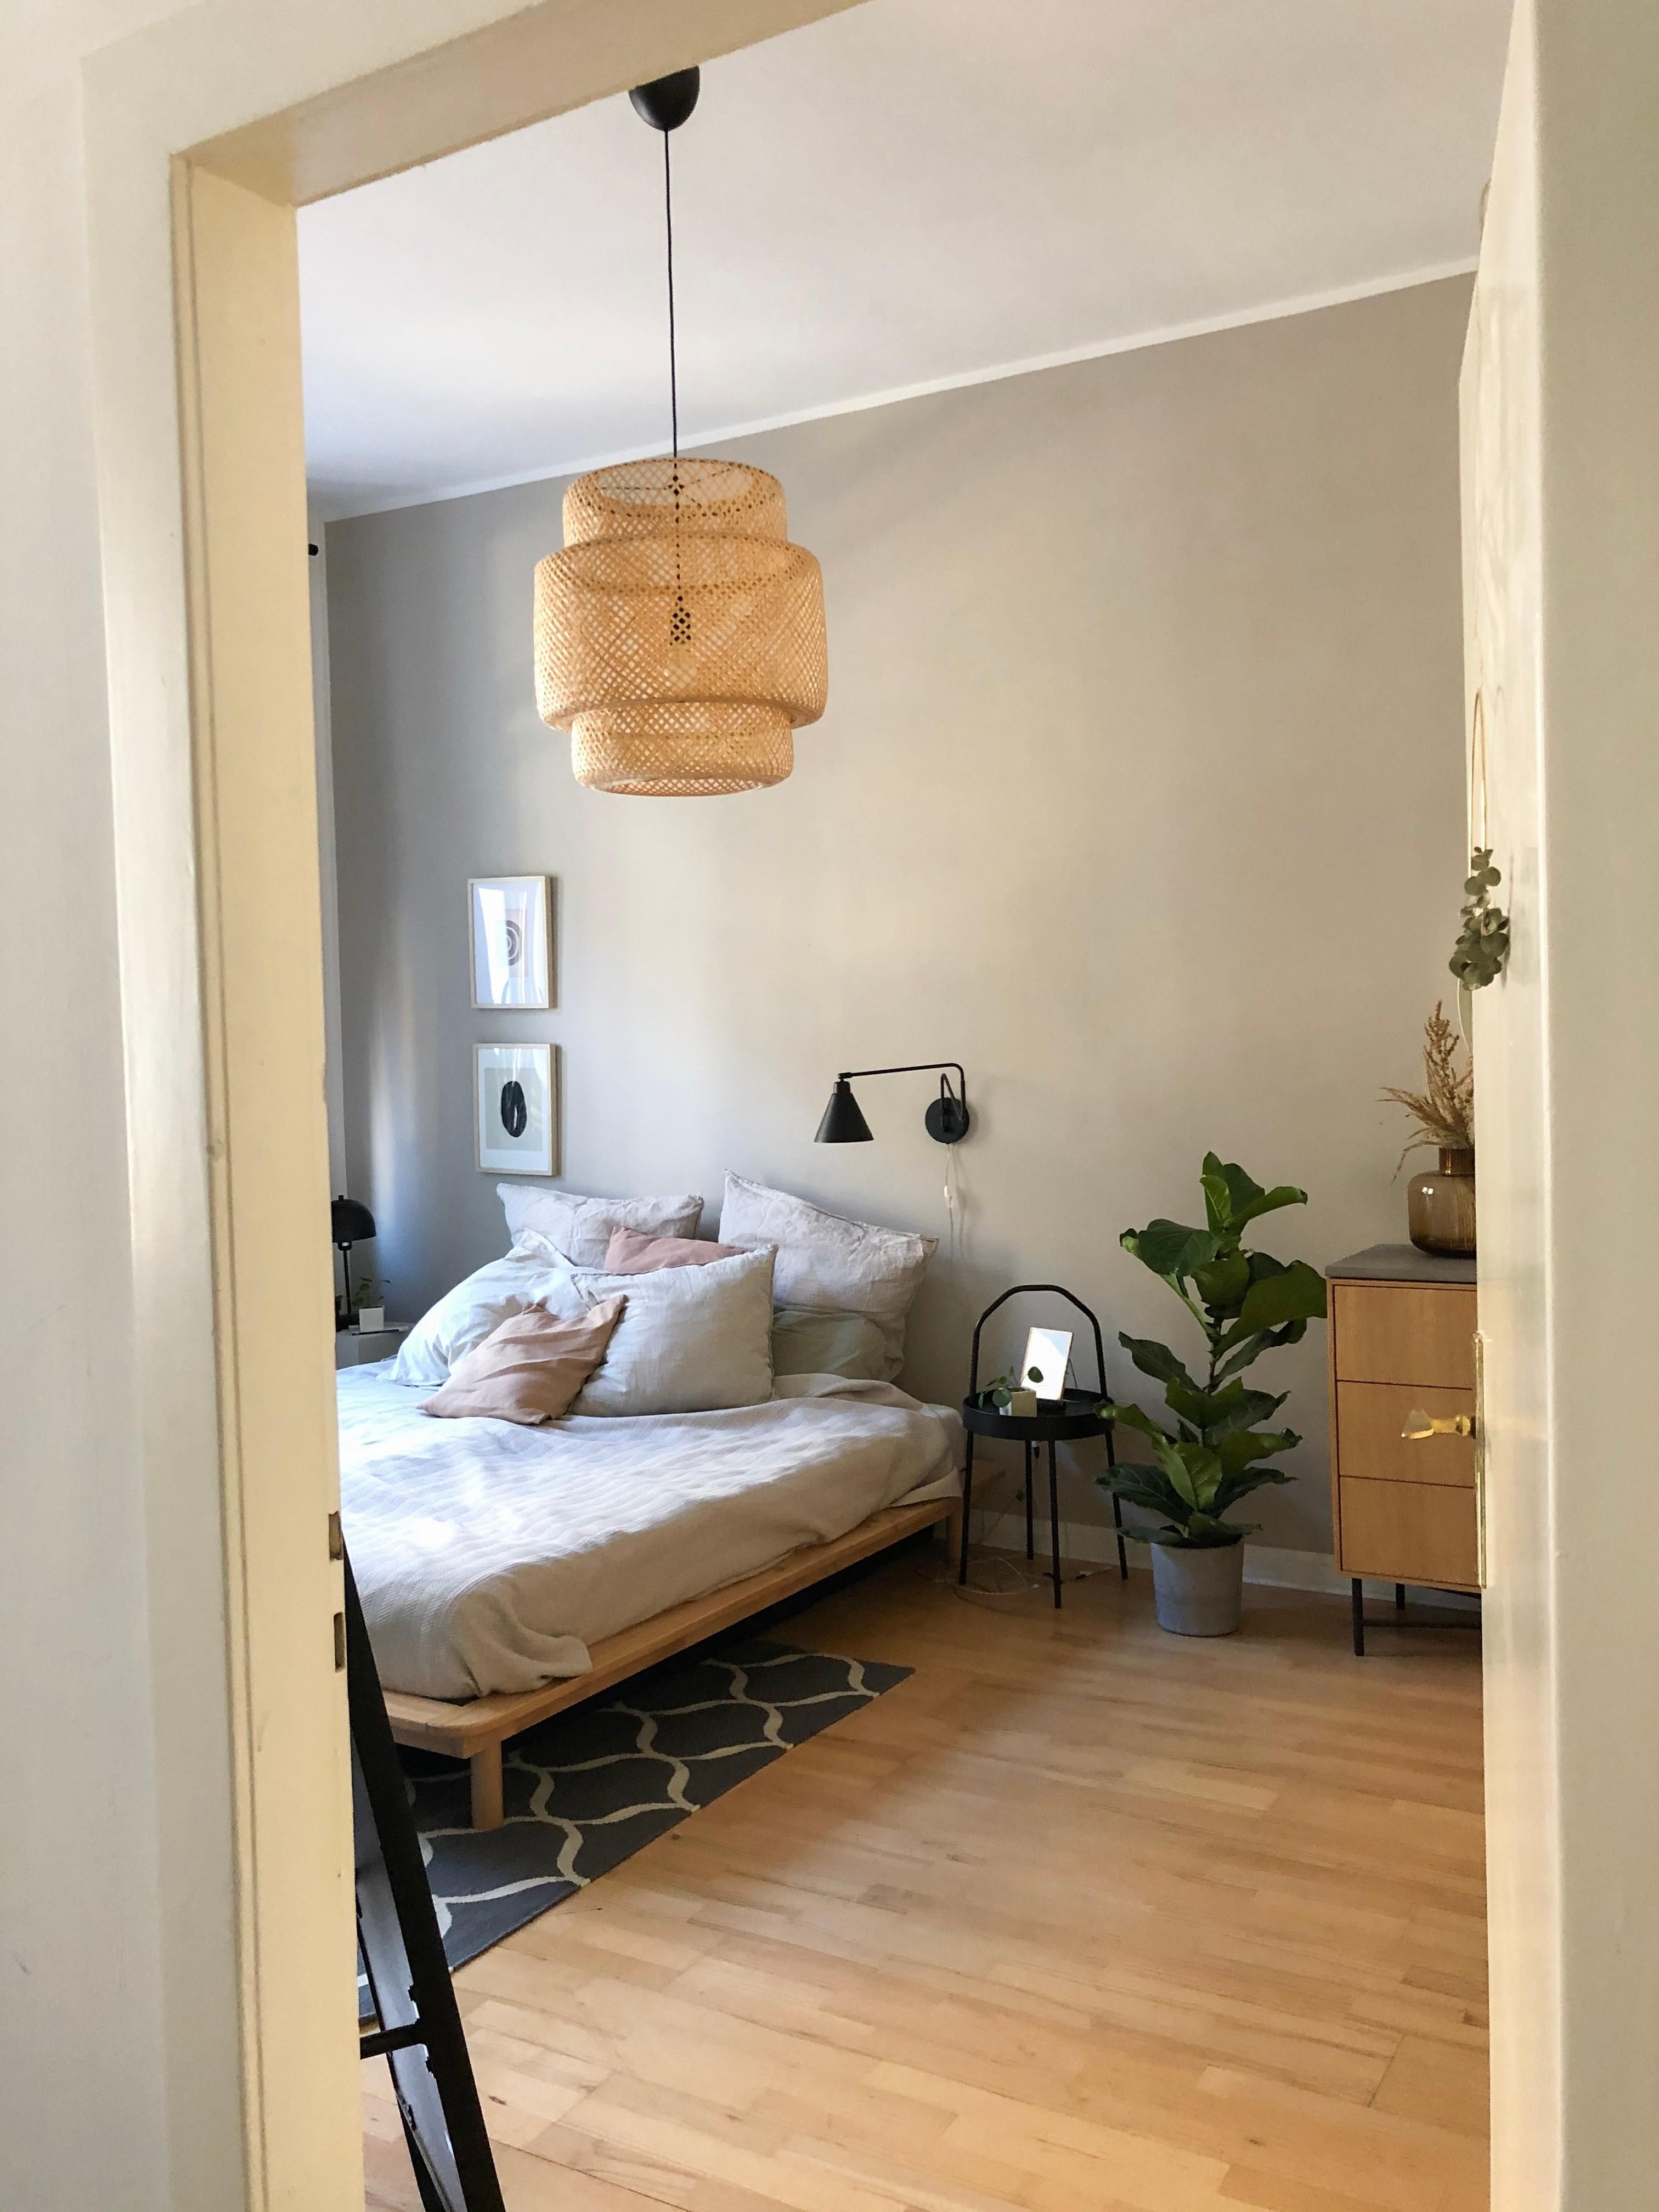 Liebster blick ins schlafzimmer bedroombedroominsposchlafzimmerideennordicminimalist  3f505952 1a82 431a b961 aab58b363b2b